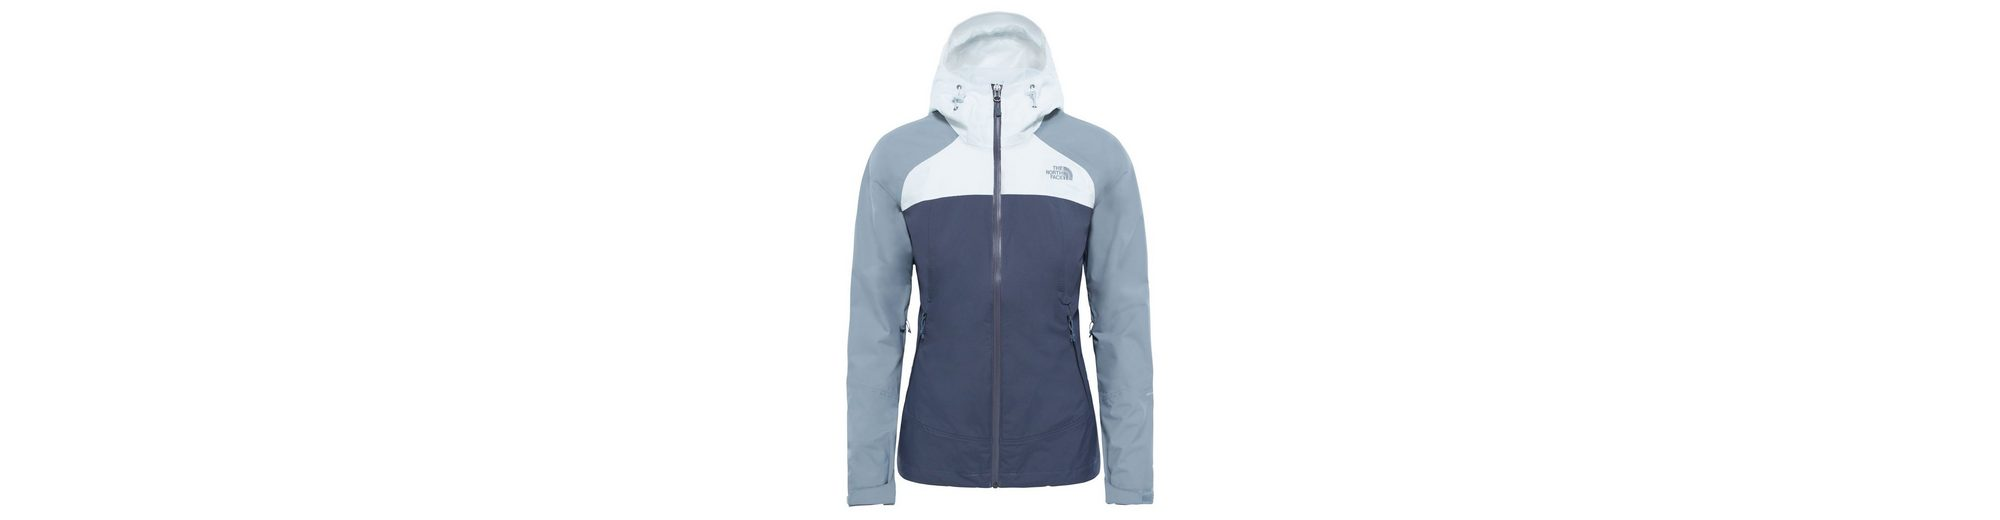 The North Face Outdoorjacke Verkauf Neueste SJybp5NNkD